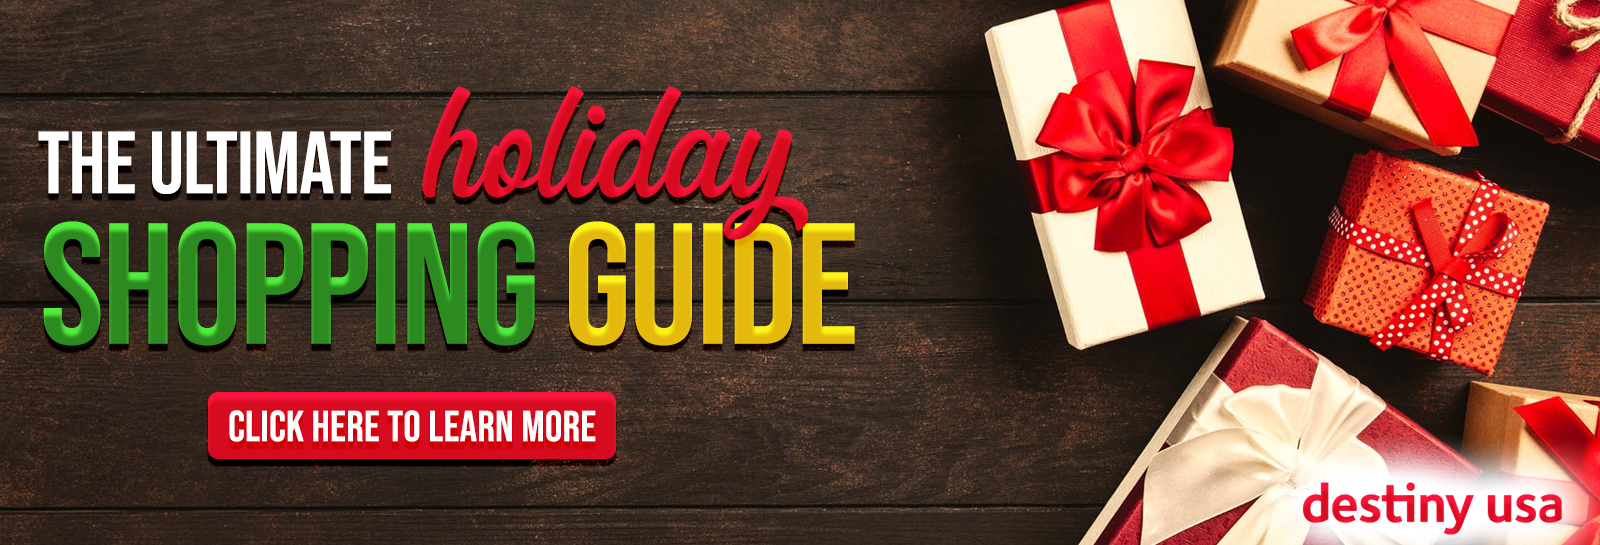 2020 11 20 holiday shopping guide